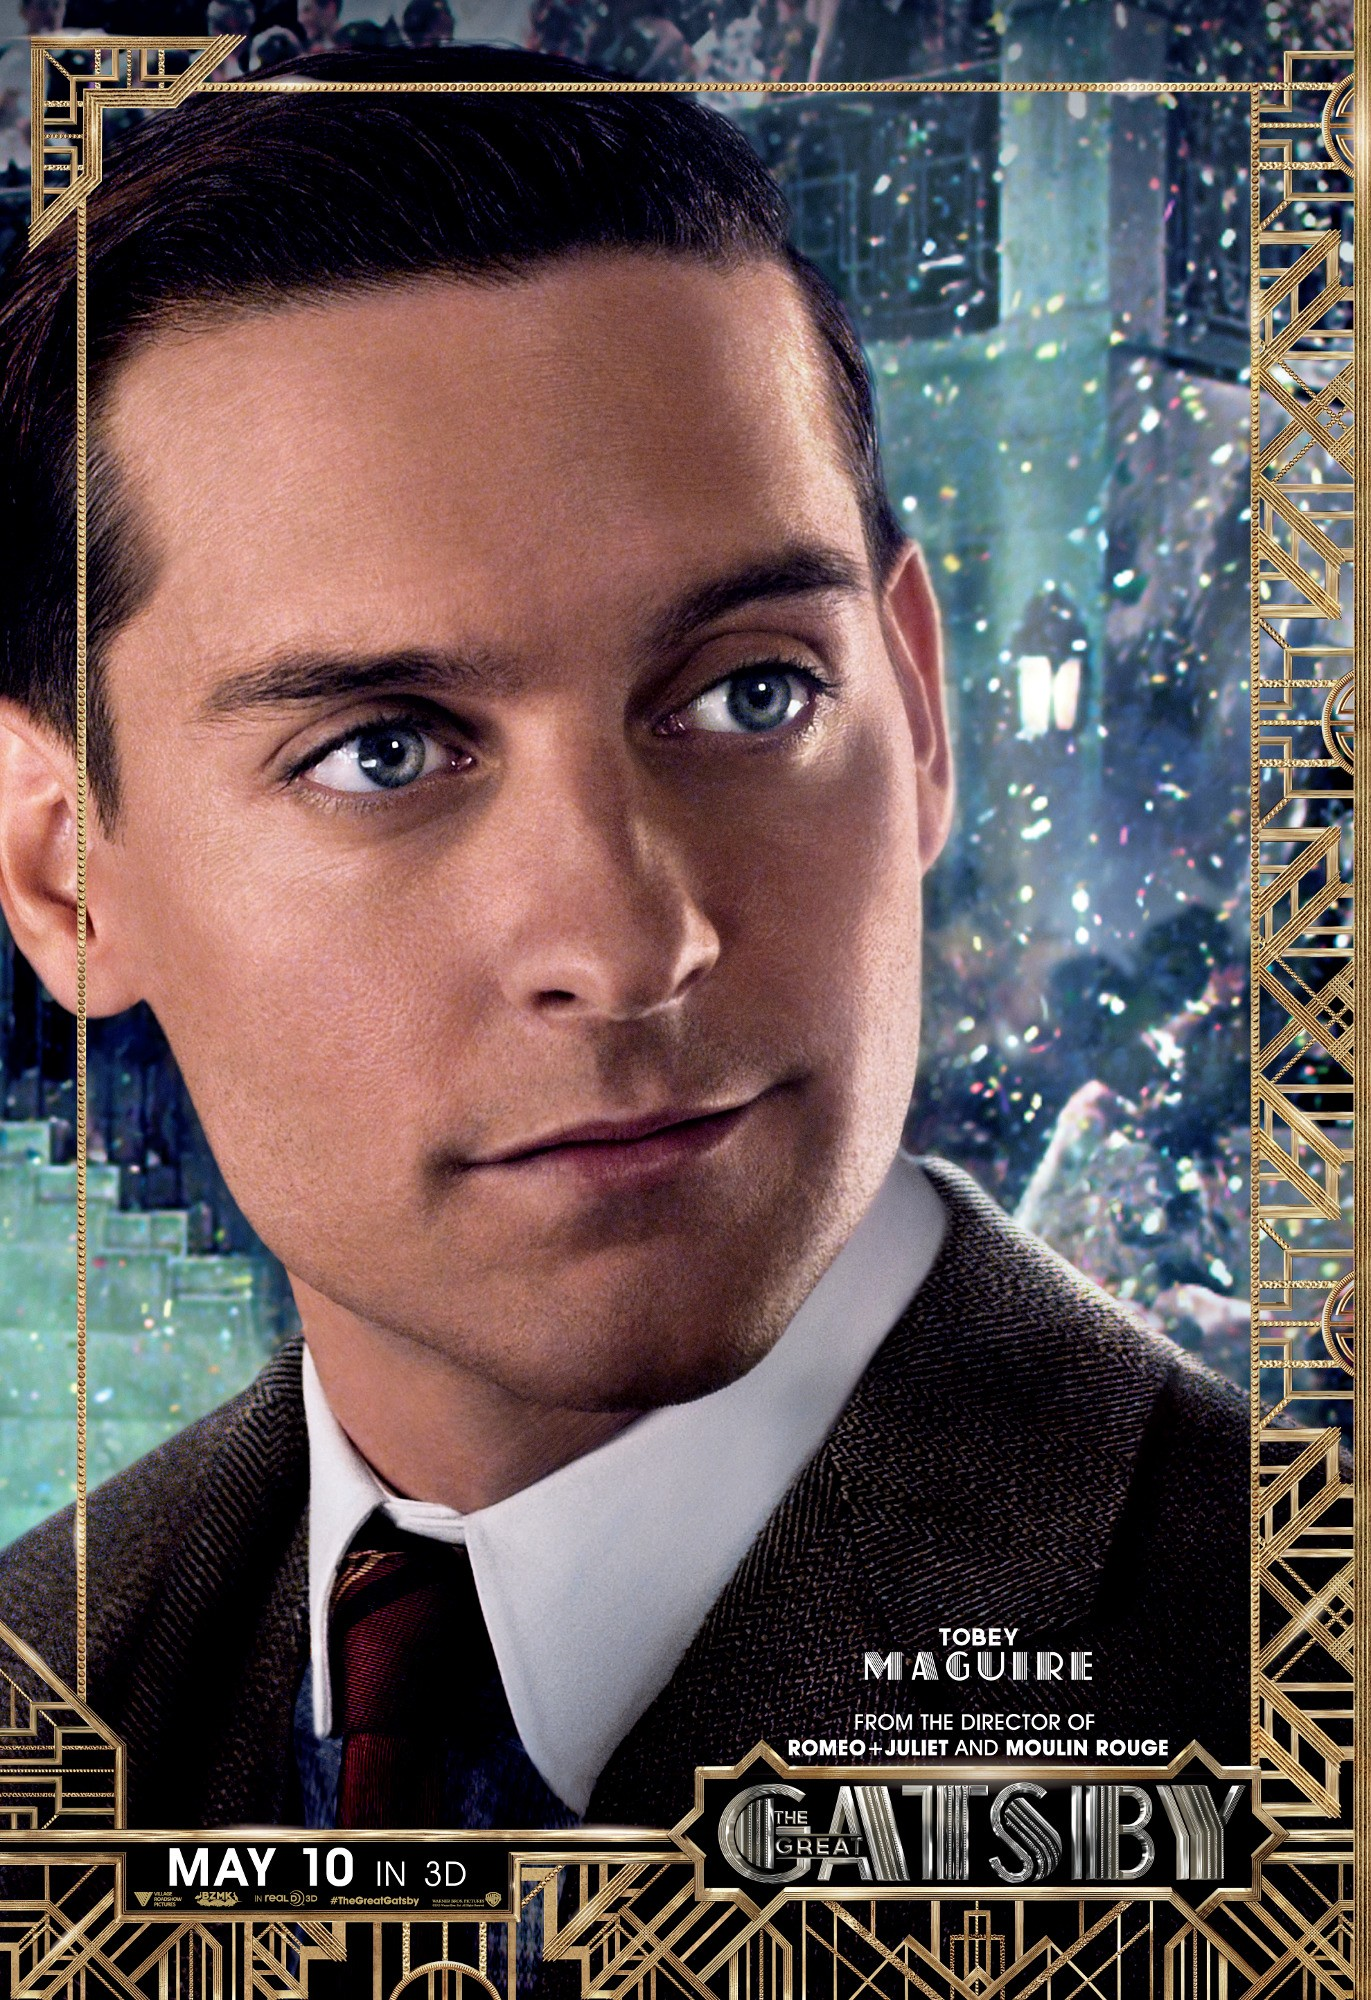 The Great Gatsby Character Poster - Tobey Maguire - HeyUGuys